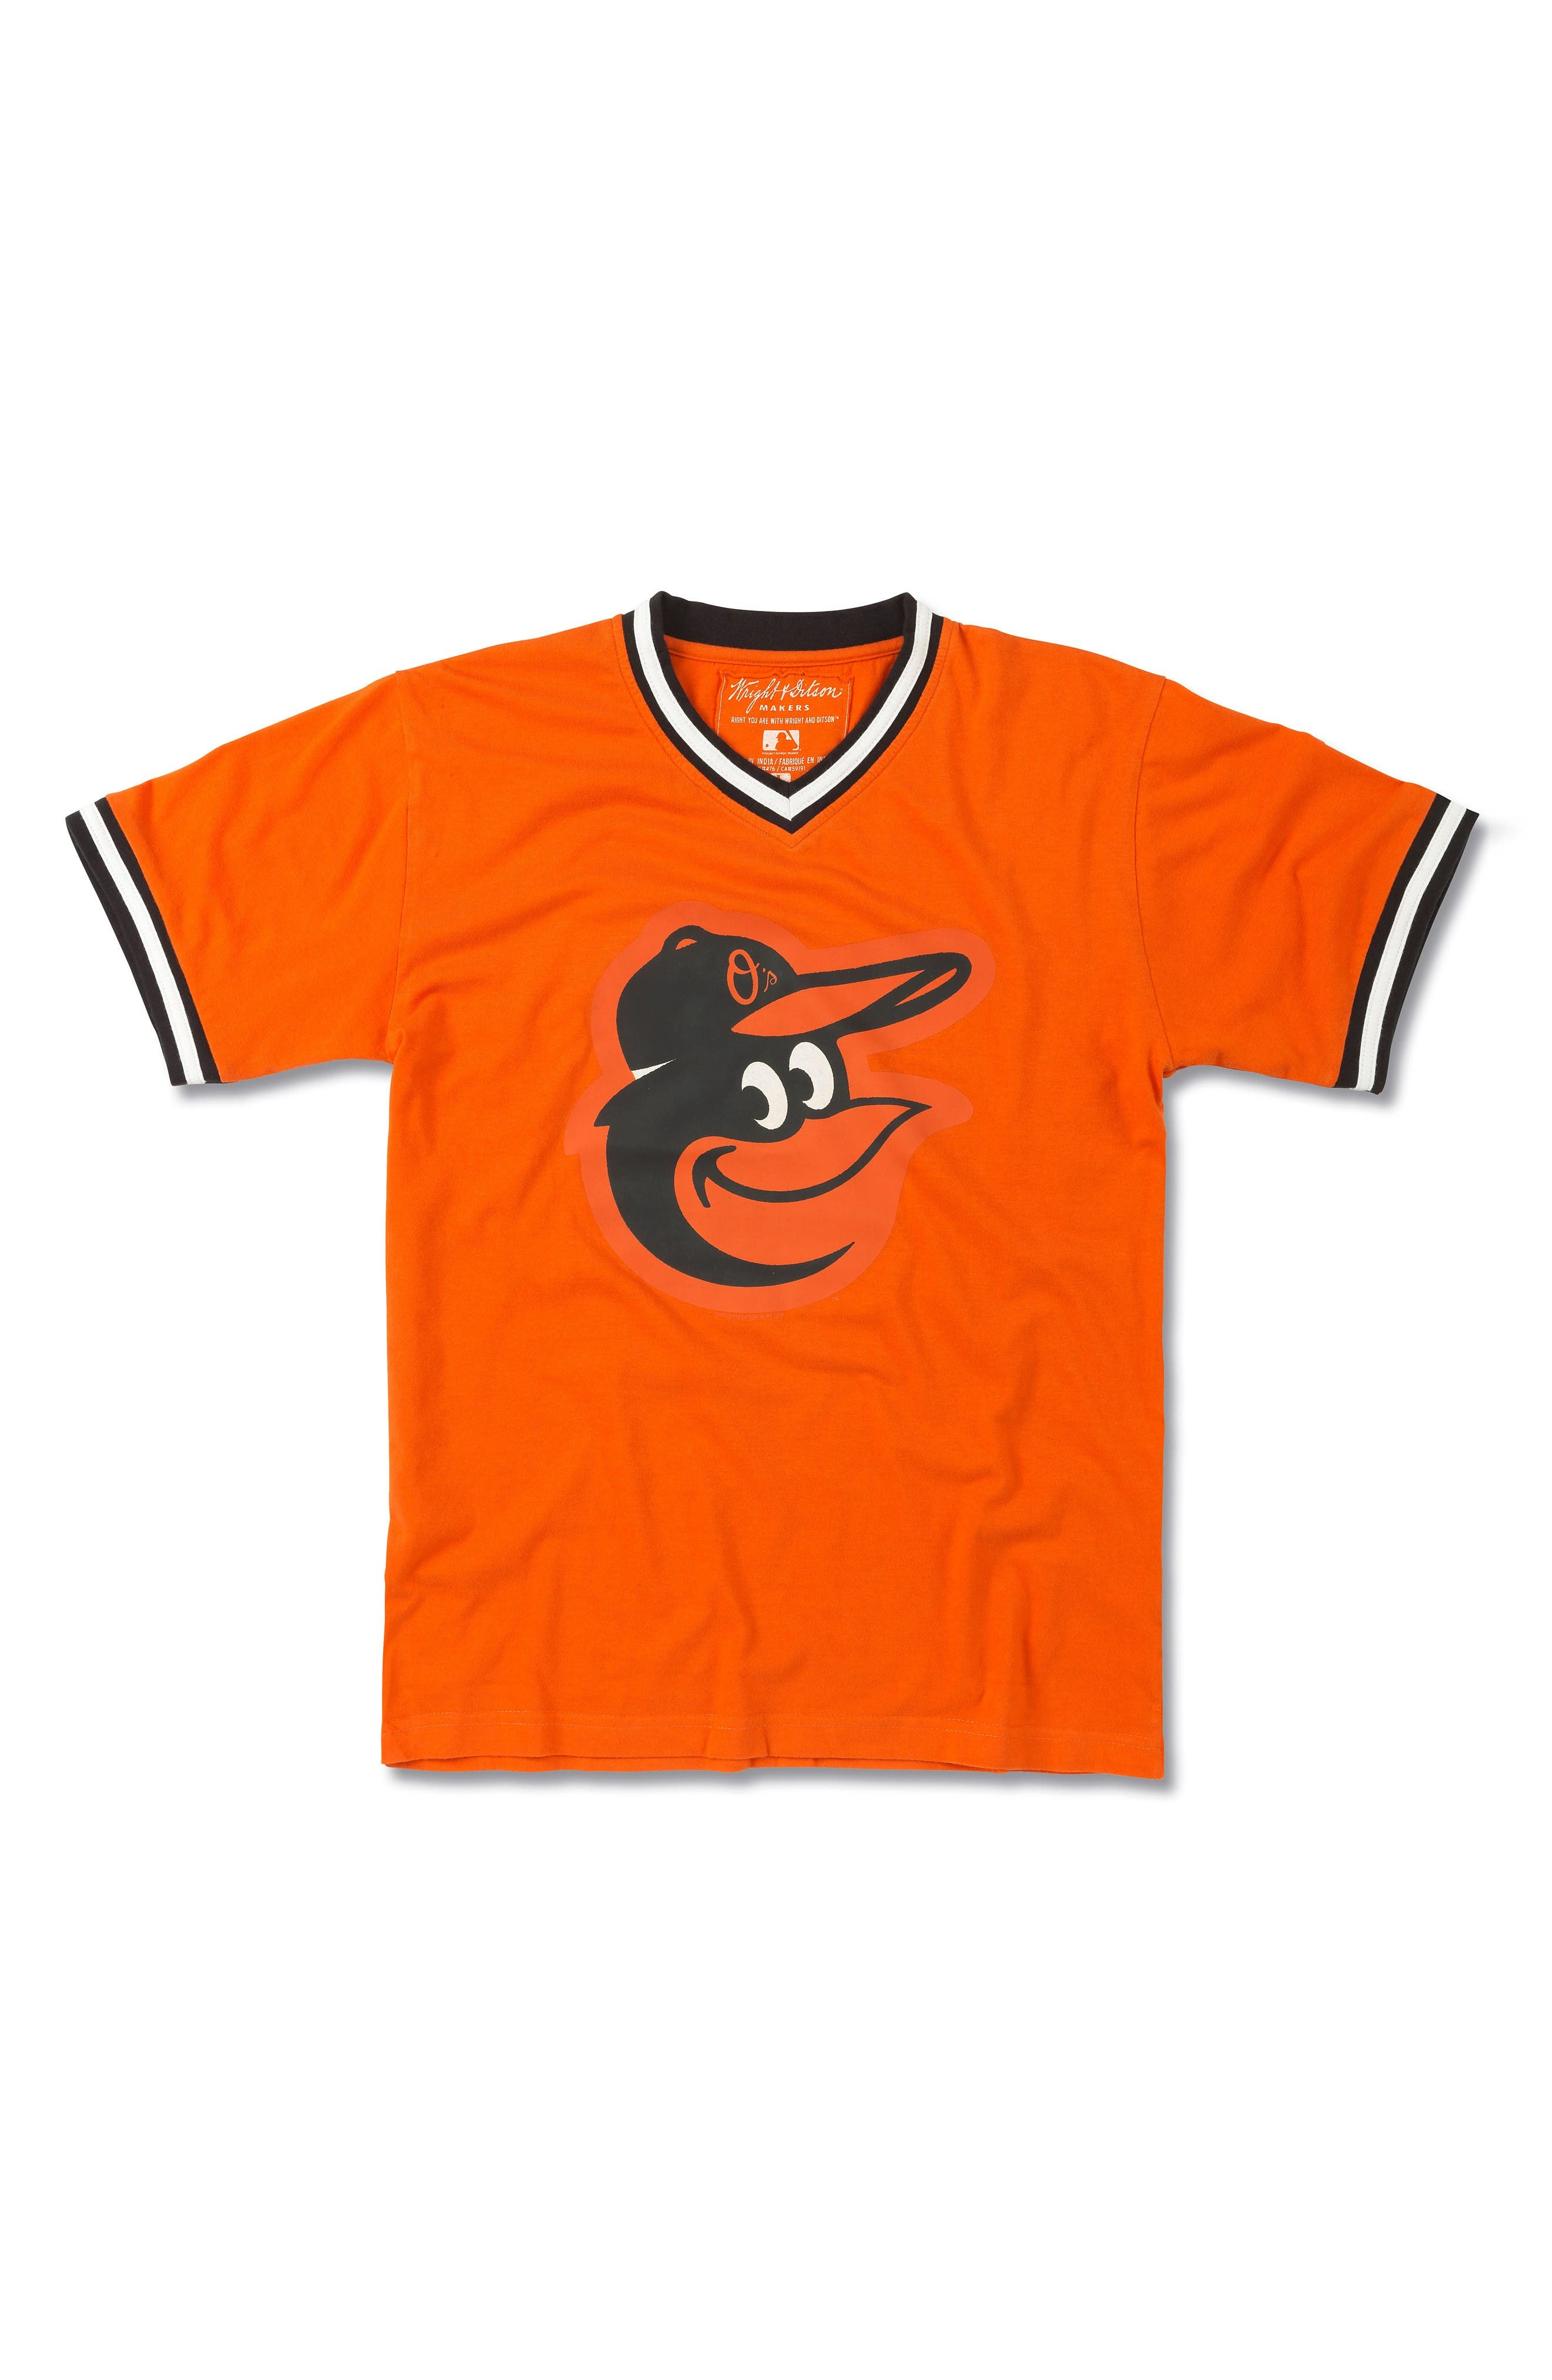 Alternate Image 1 Selected - Wright & Ditson Baltimore Orioles T-Shirt (Little Boys & Big Boys)